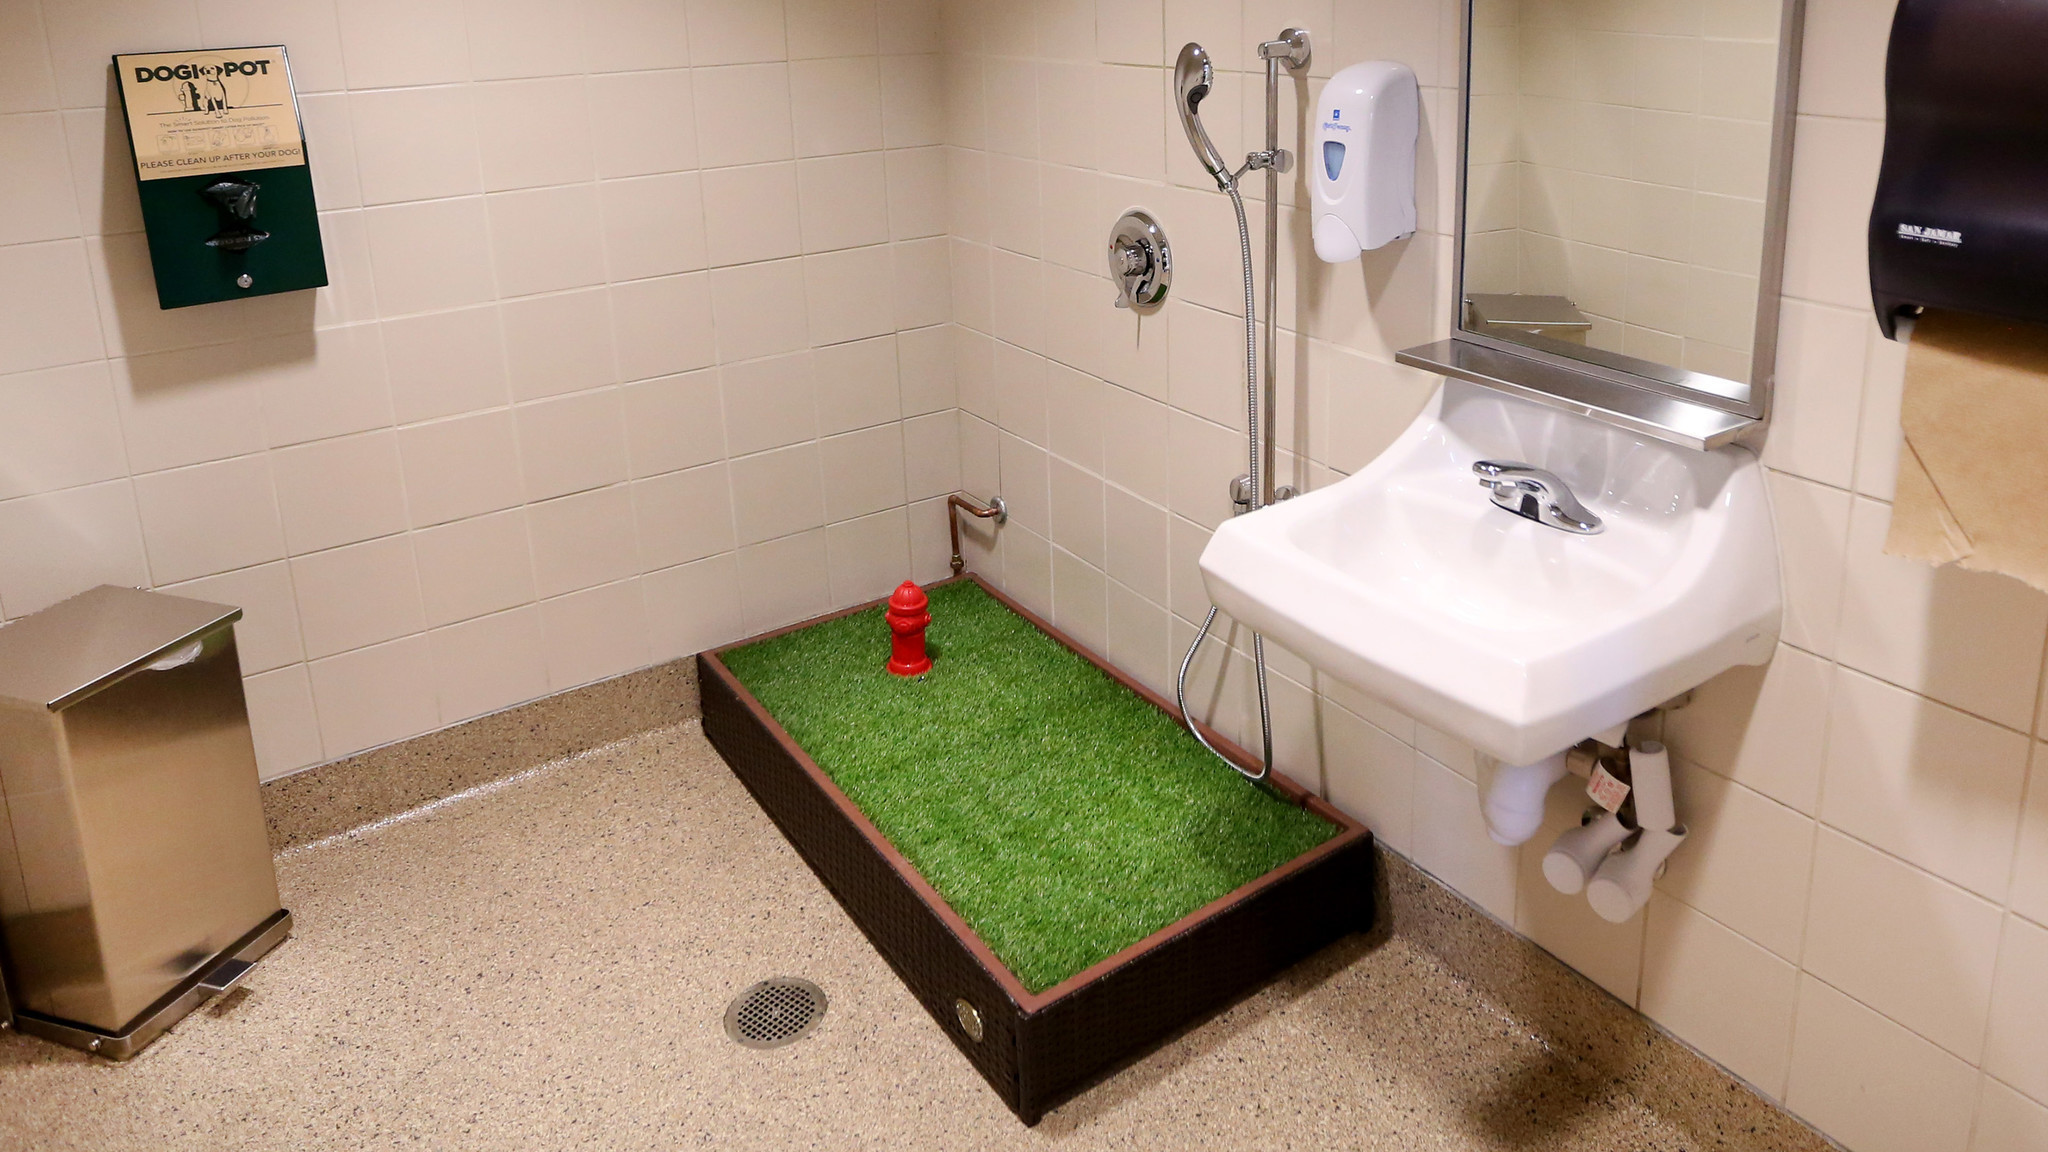 Midway Airport opens pet bathroom - Chicago Tribune